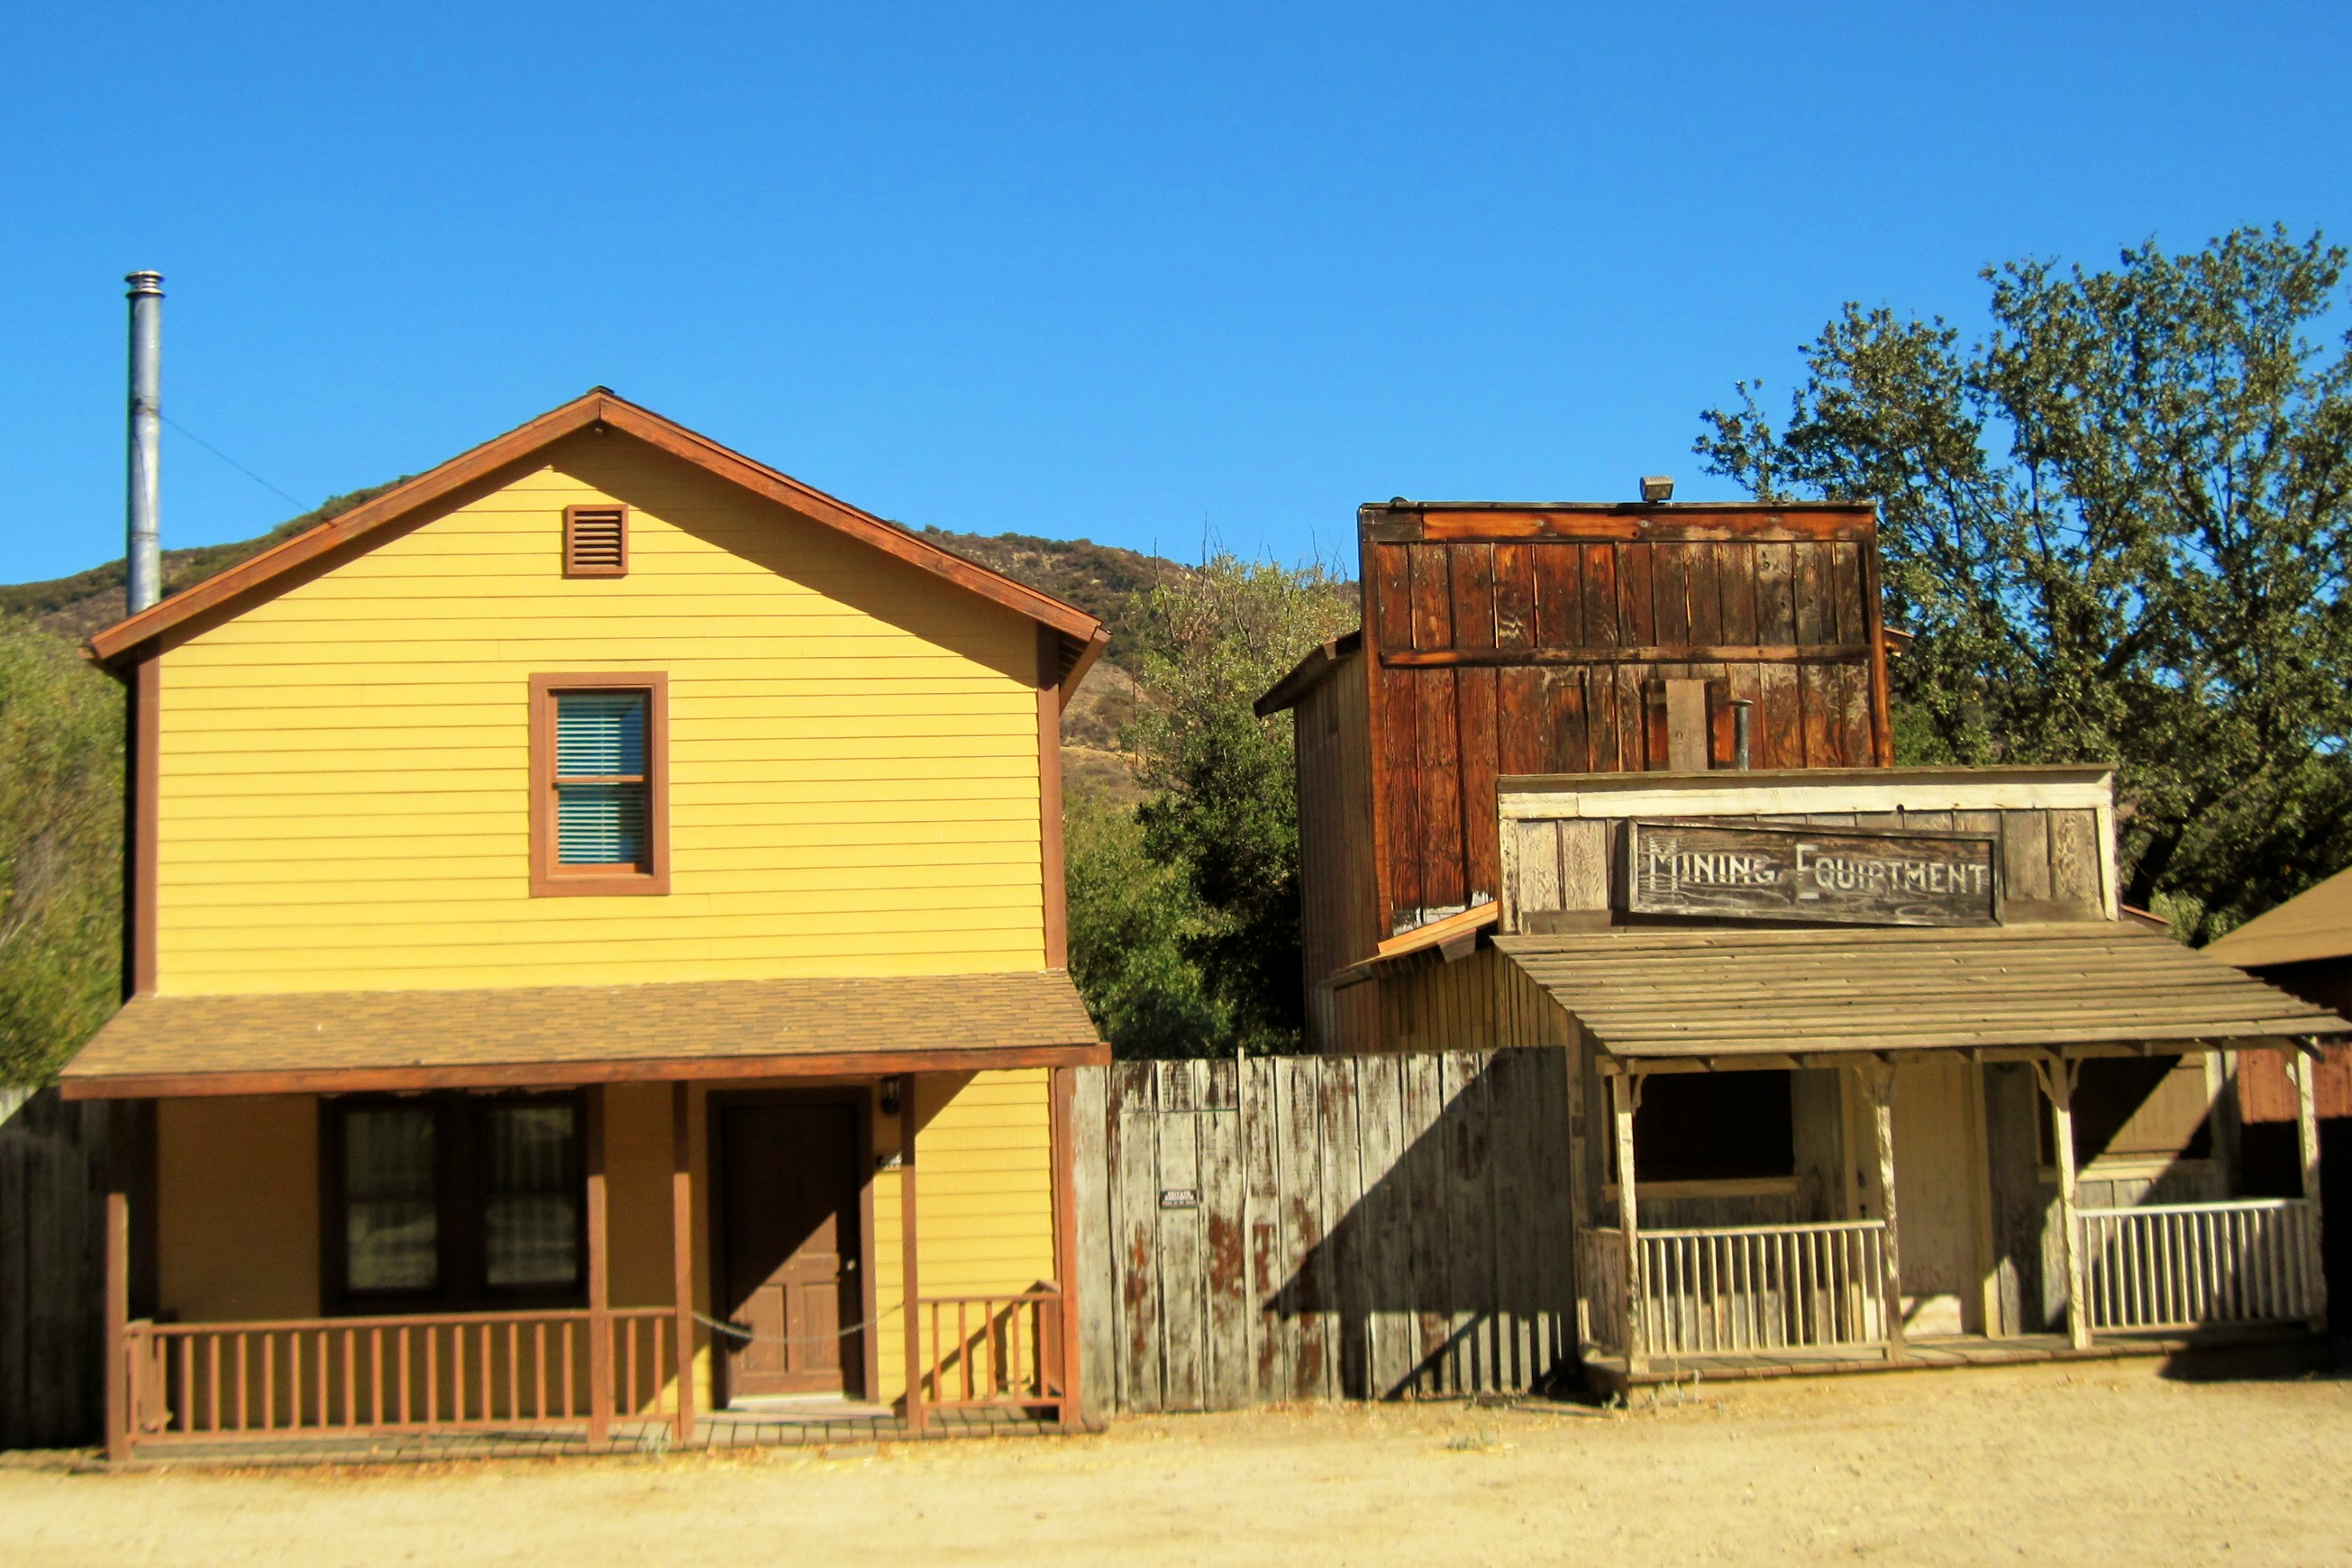 Old west-style buildings at Paramount Ranch